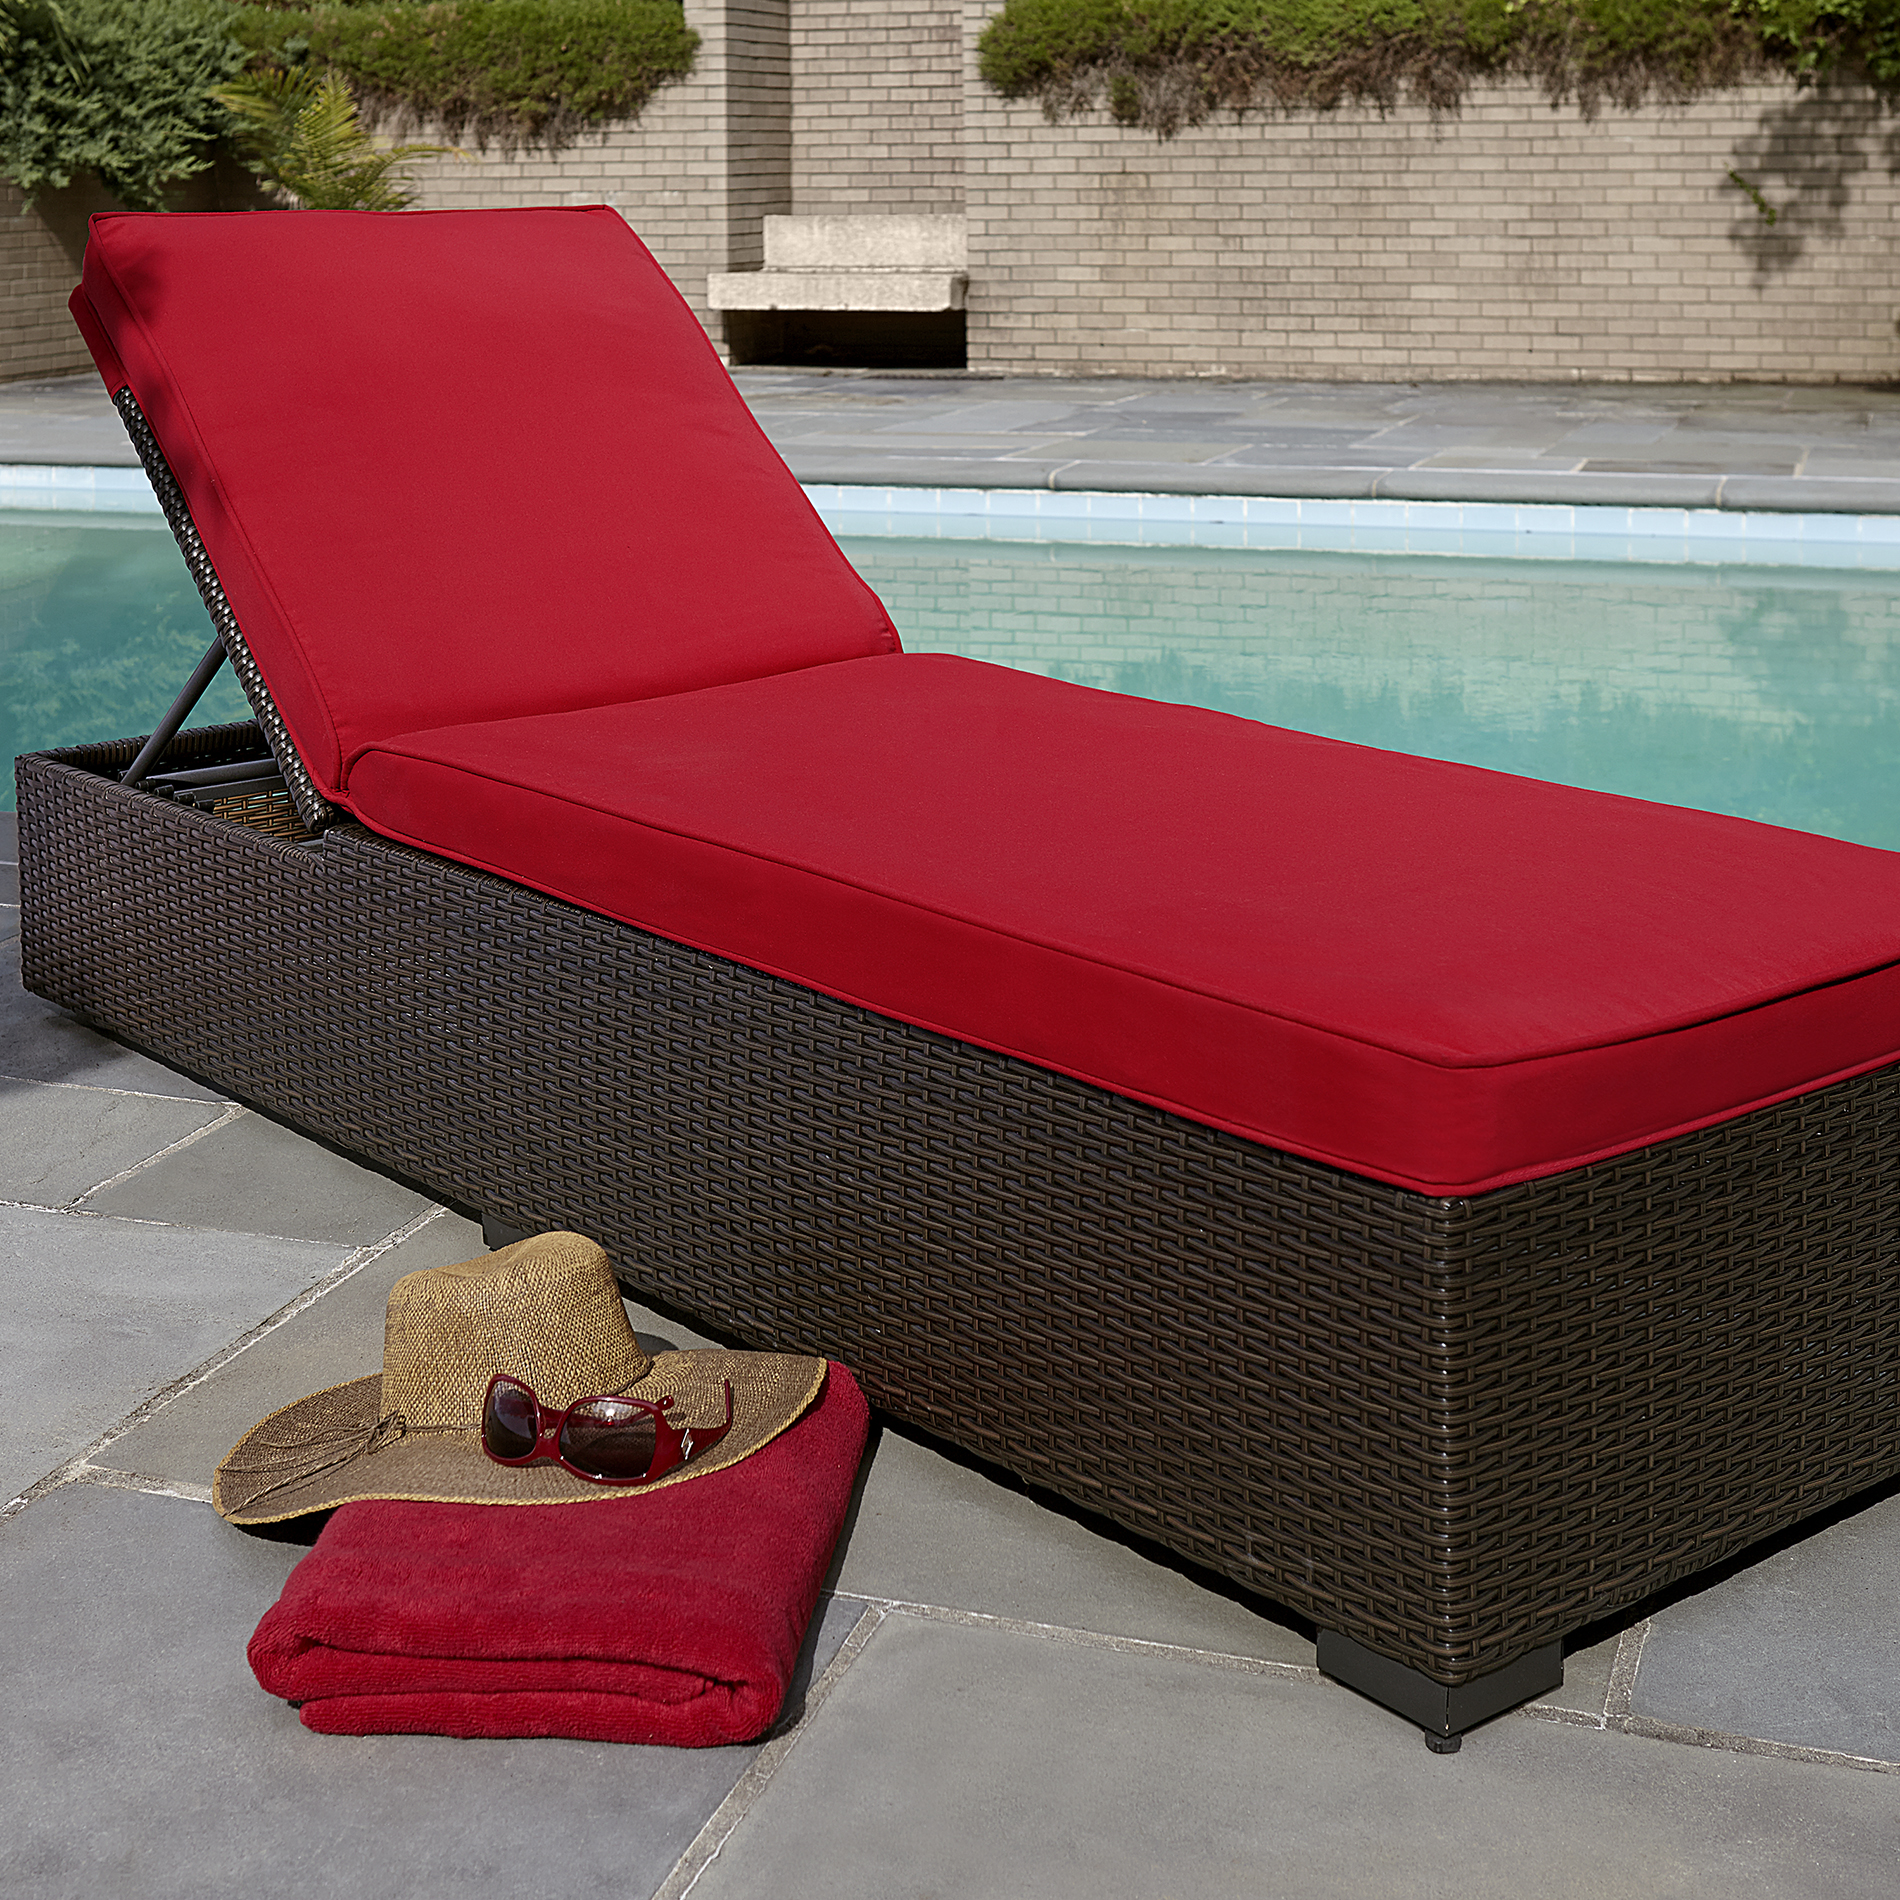 sears lounge chairs folding and table target grand resort he 006 osborn chaise red